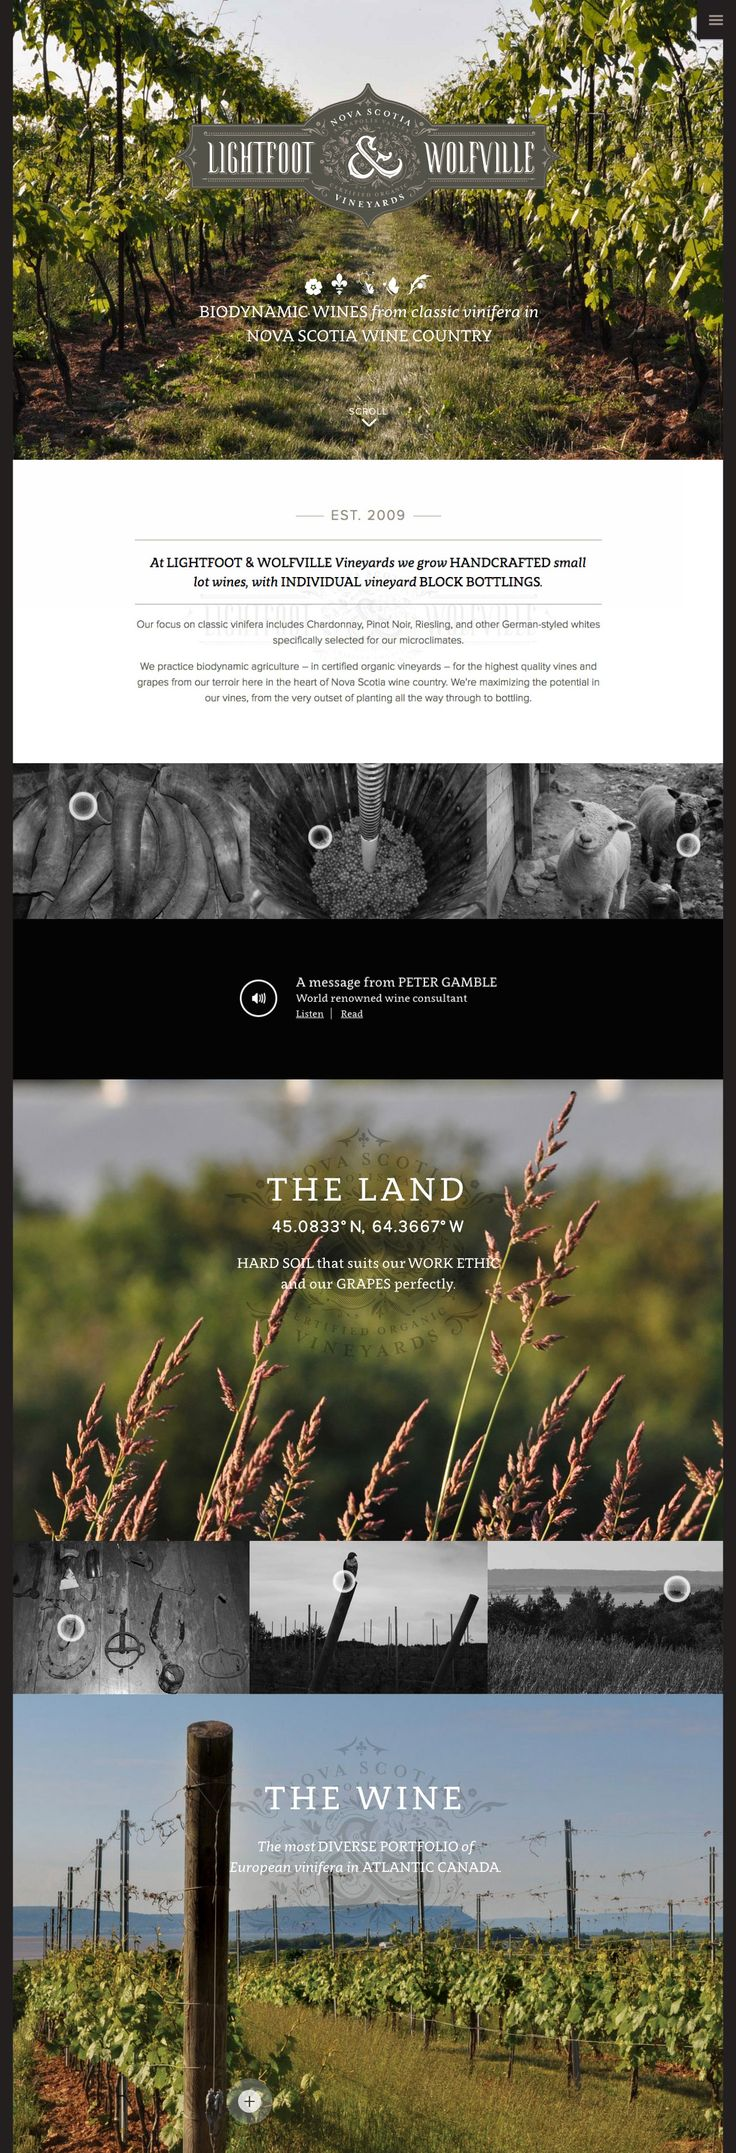 Responsive landing page with the popular off-canvas navigation menu for 'Lightfoot & Wolfville' vineyards. The long parallax scrolling one pager features some beautiful imagery and a lovely blend of typography. Really like how they offer an audio introduction by a wine consultant.